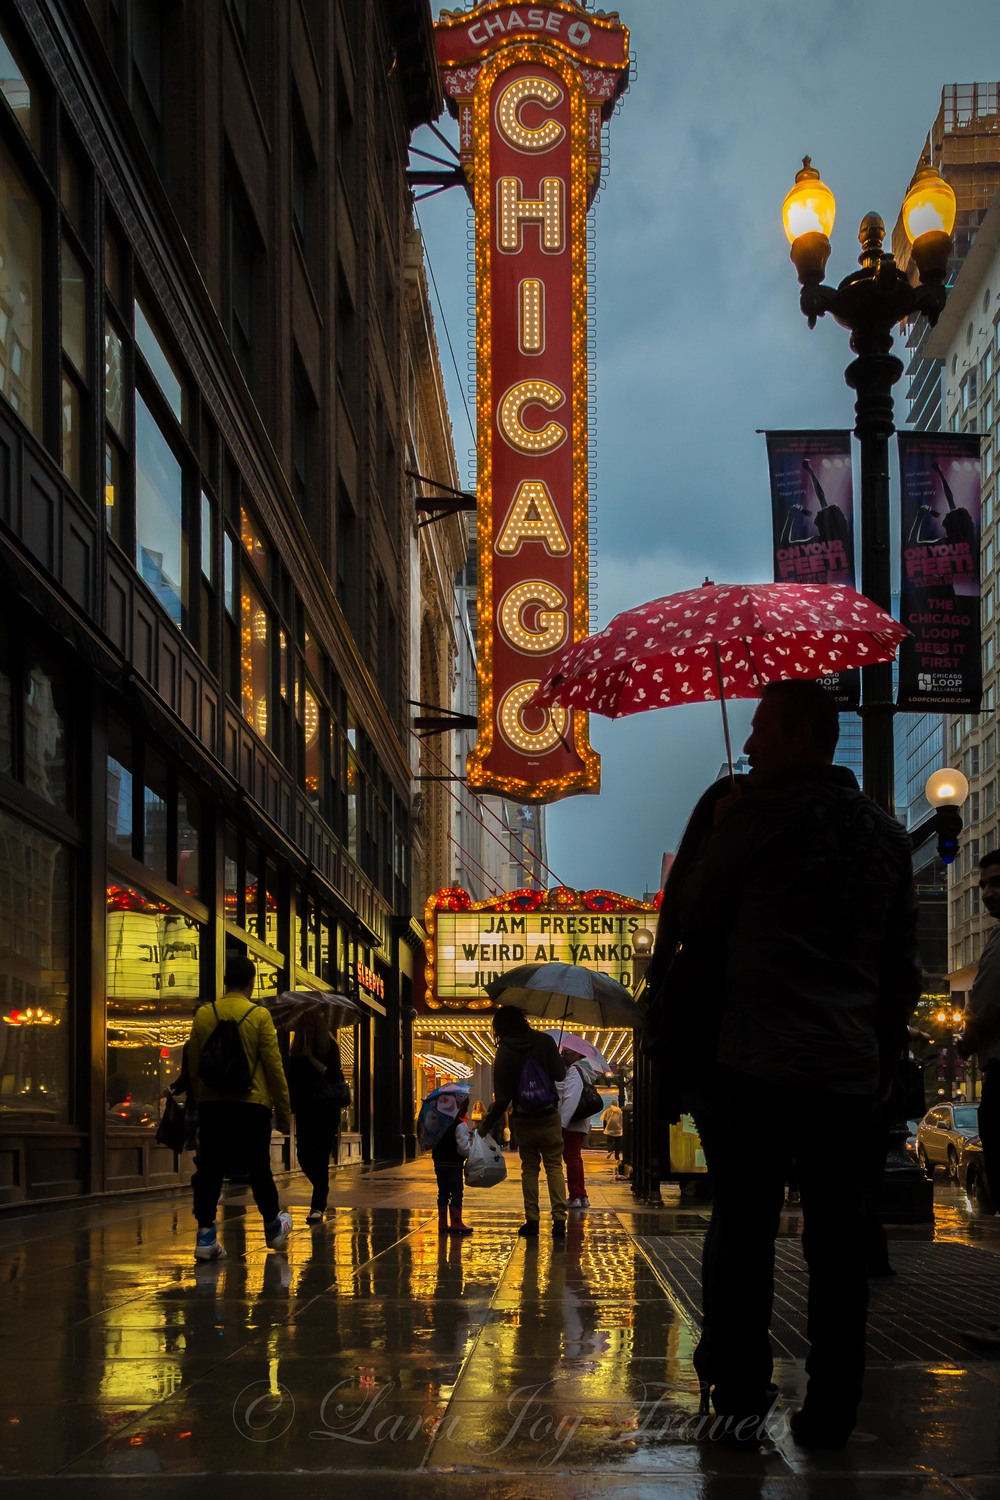 Umbrellas, rain and the famed Chicago theatre sign.